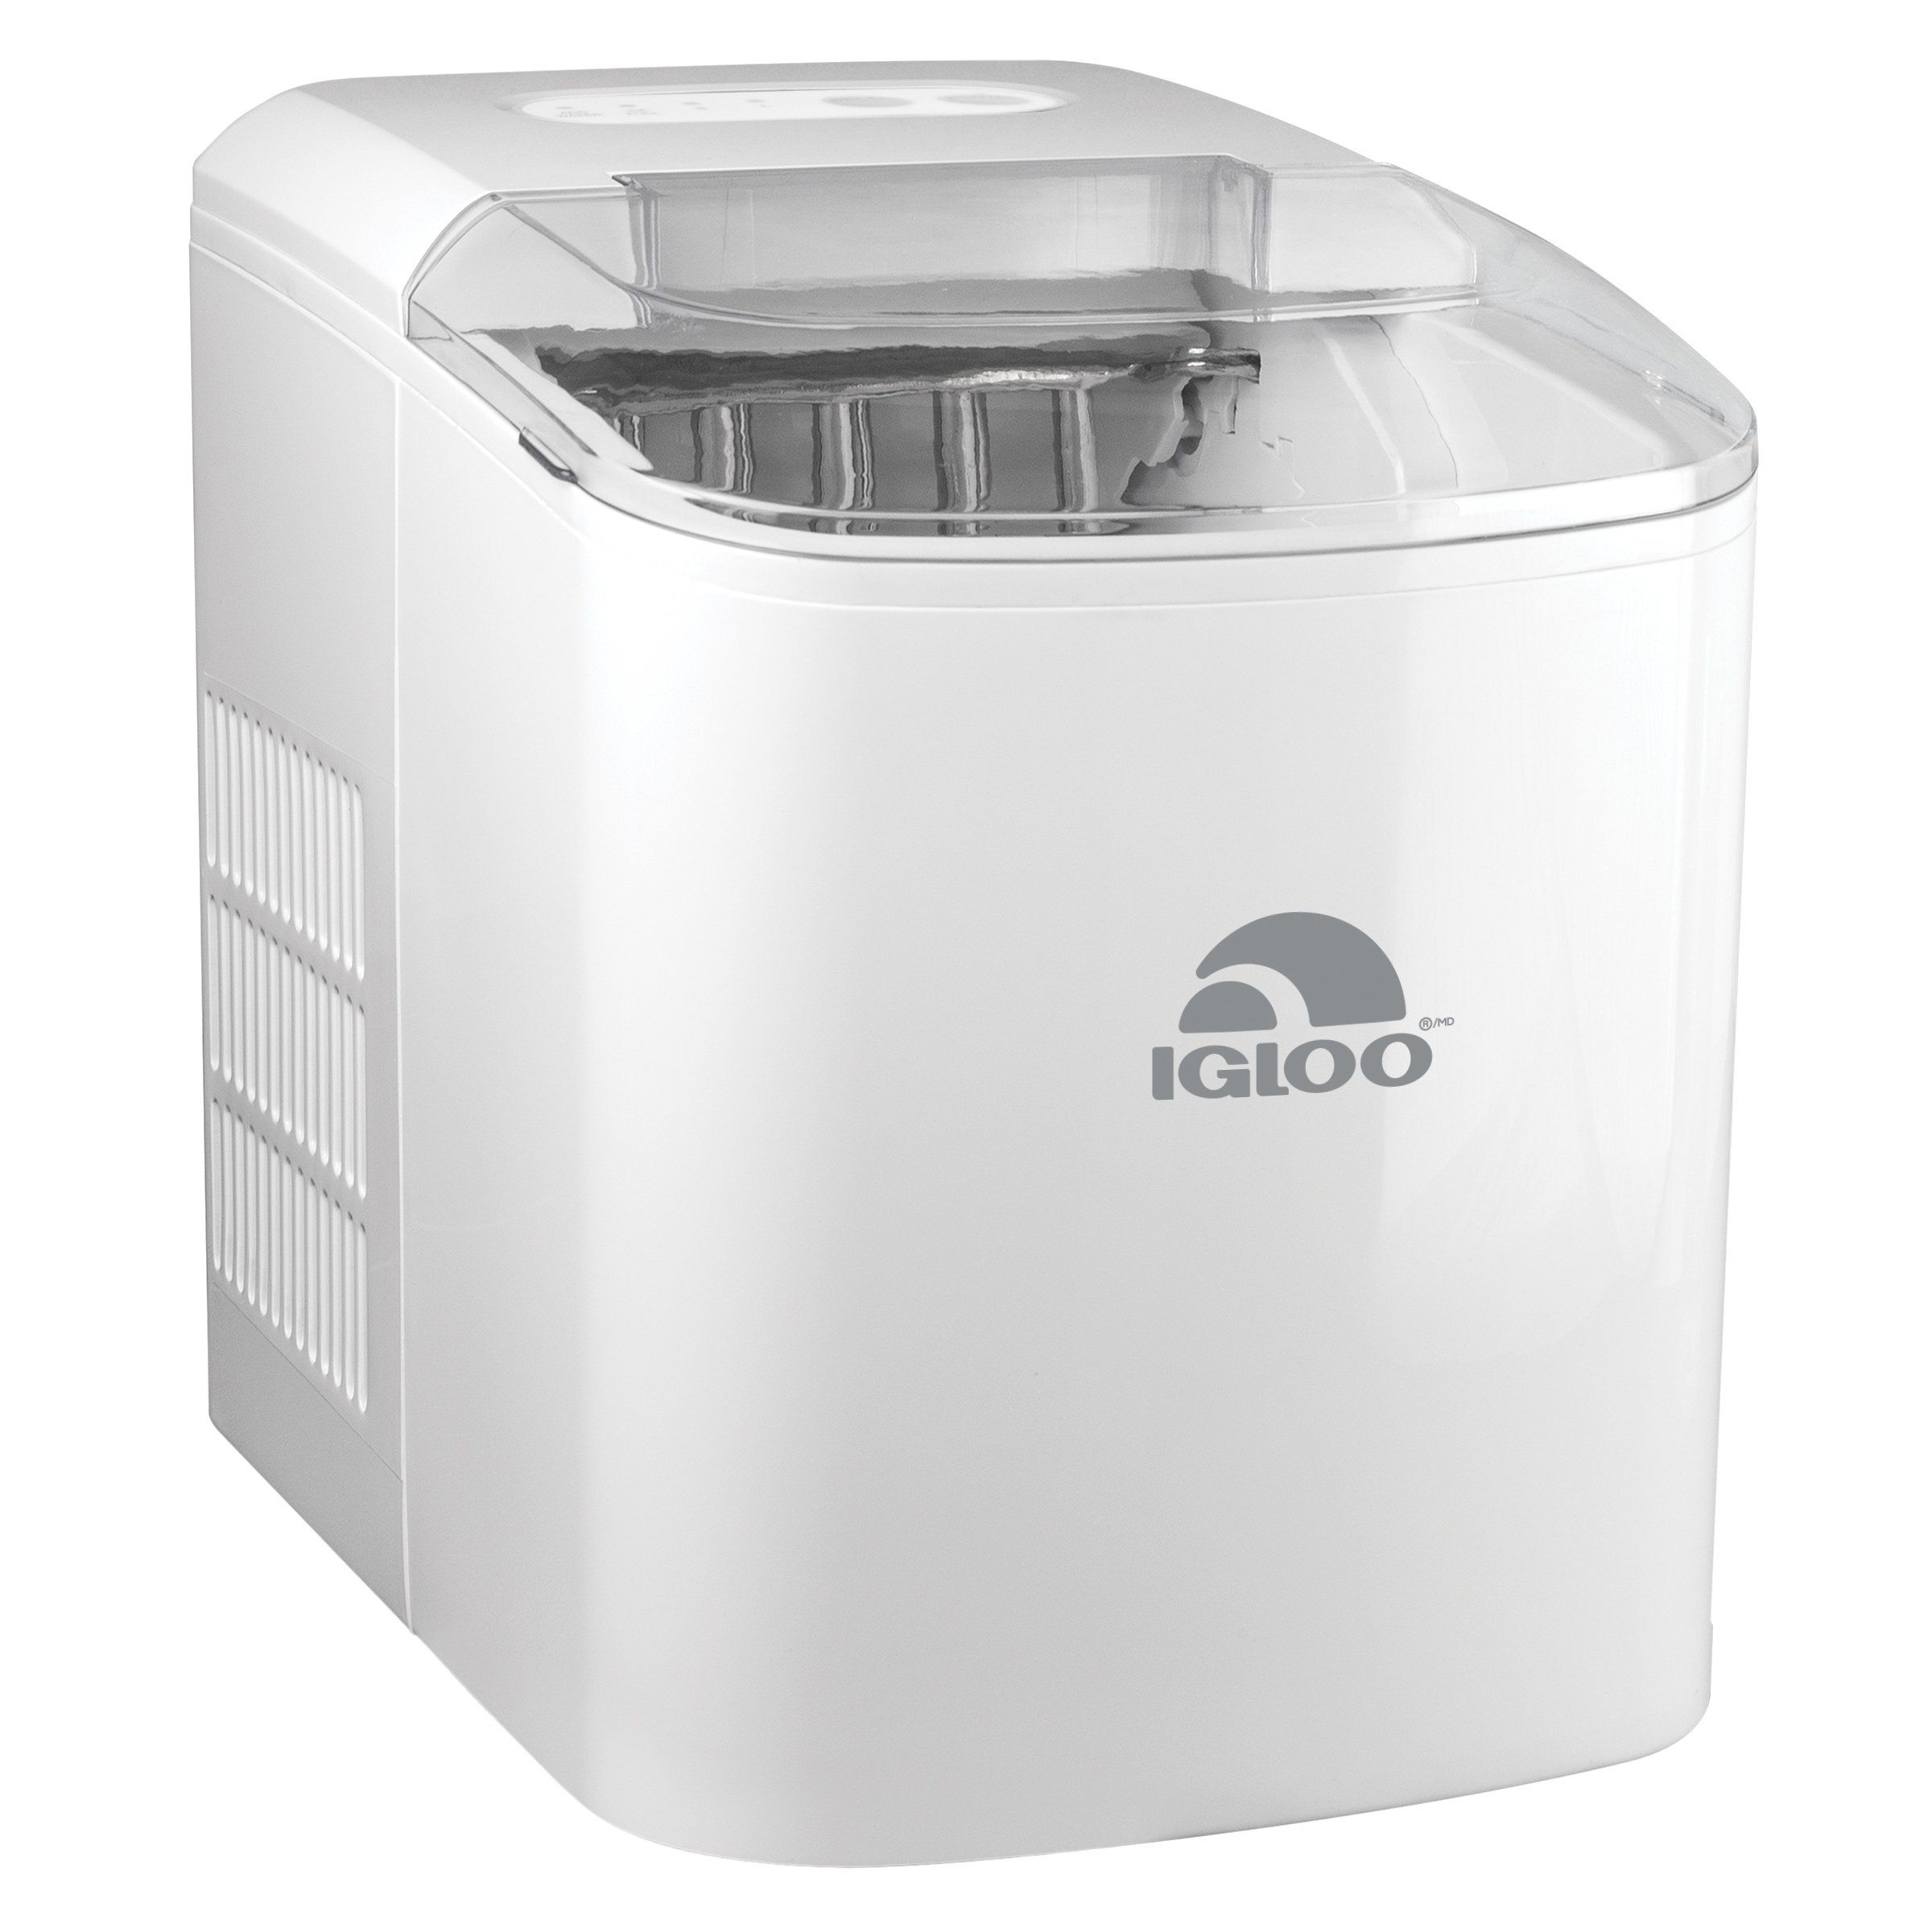 Igloo Iceb26wh 26 Pound Automatic Ice Cube Maker White Plastic